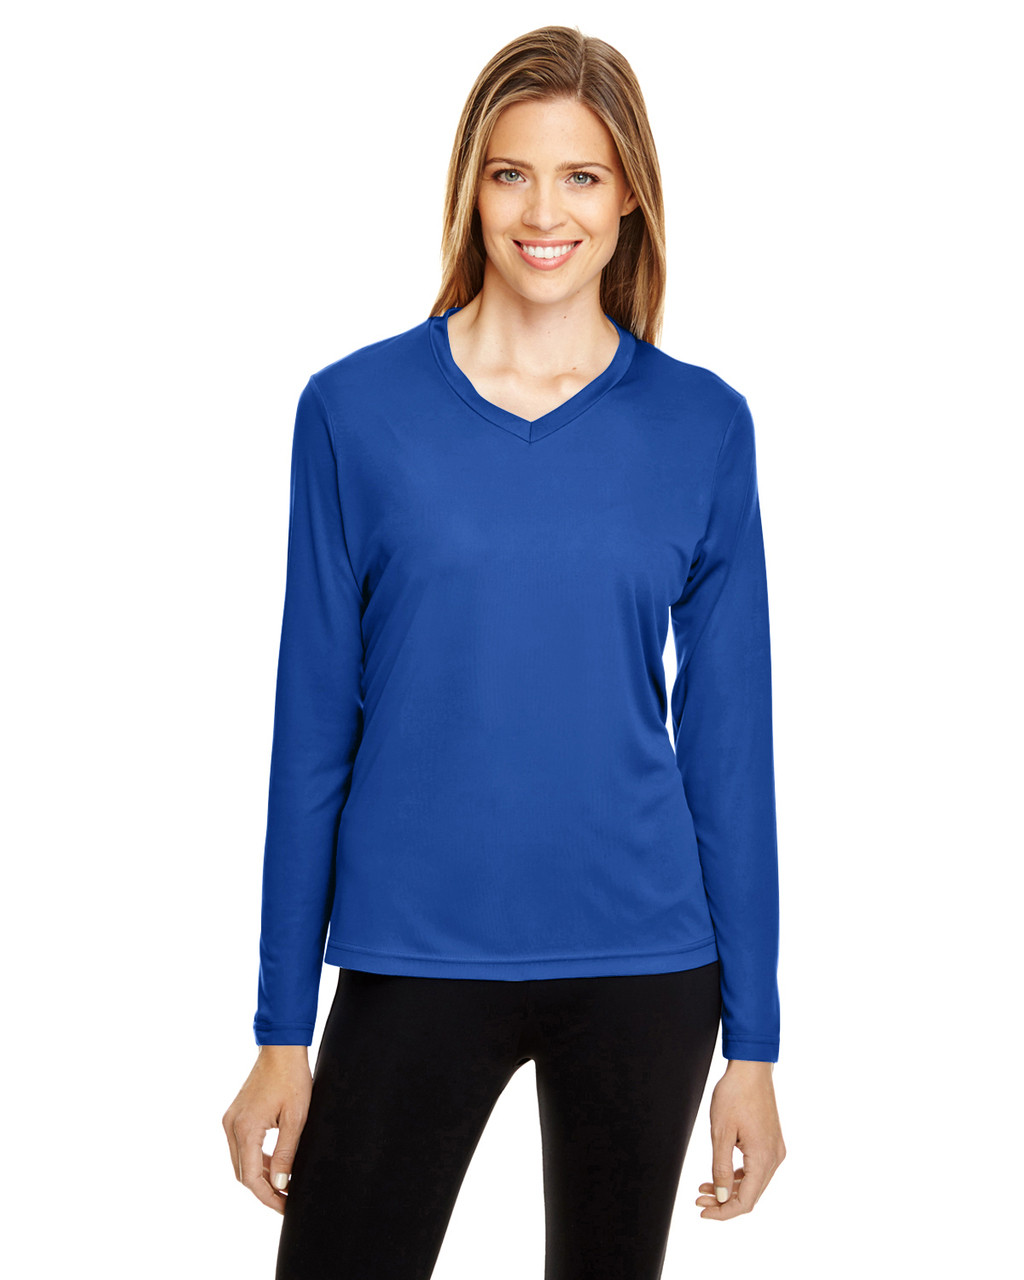 Sport Royal - TT11WL Team 365 Ladies' Zone Performance Long-Sleeve T-Shirt